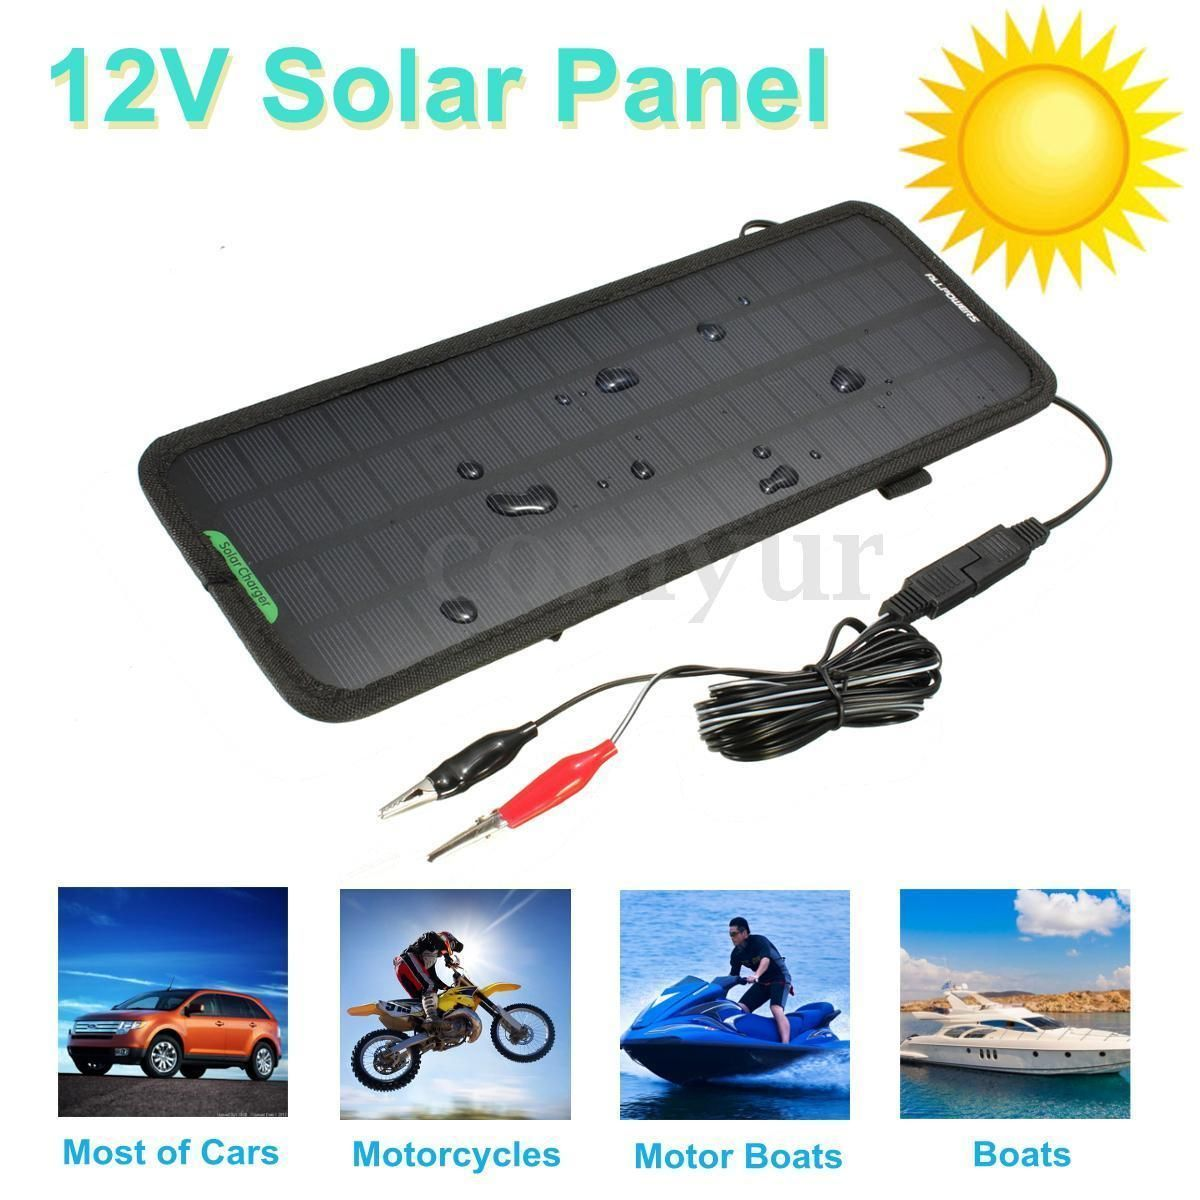 Smart 12v 4 5w Solar Panel Battery Power Backup Charger Car Boat Rv Suv Home Uk Ebay Solar Panel Battery 12v Solar Panel Portable Solar Panels